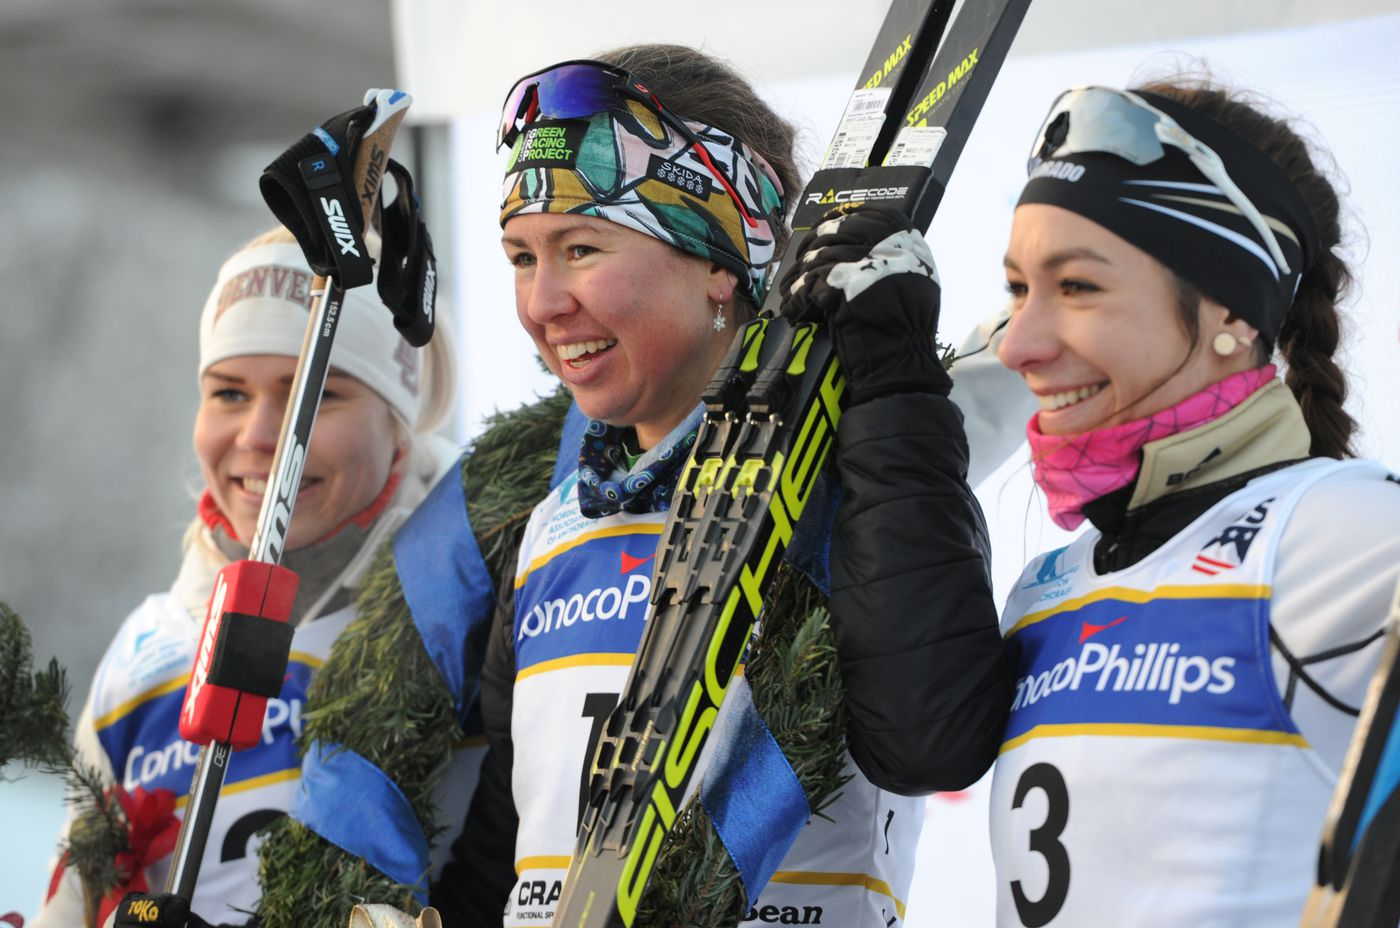 Freestyle sprint winner Caitlin Patterson is flanked by runner up Jasmi Joensuu, left, and Petra Hyncicova, right on the podium during the U.S. Cross Country Skiing Championships at Kincaid Park on Friday, Jan. 5, 2018. (Bill Roth / ADN)